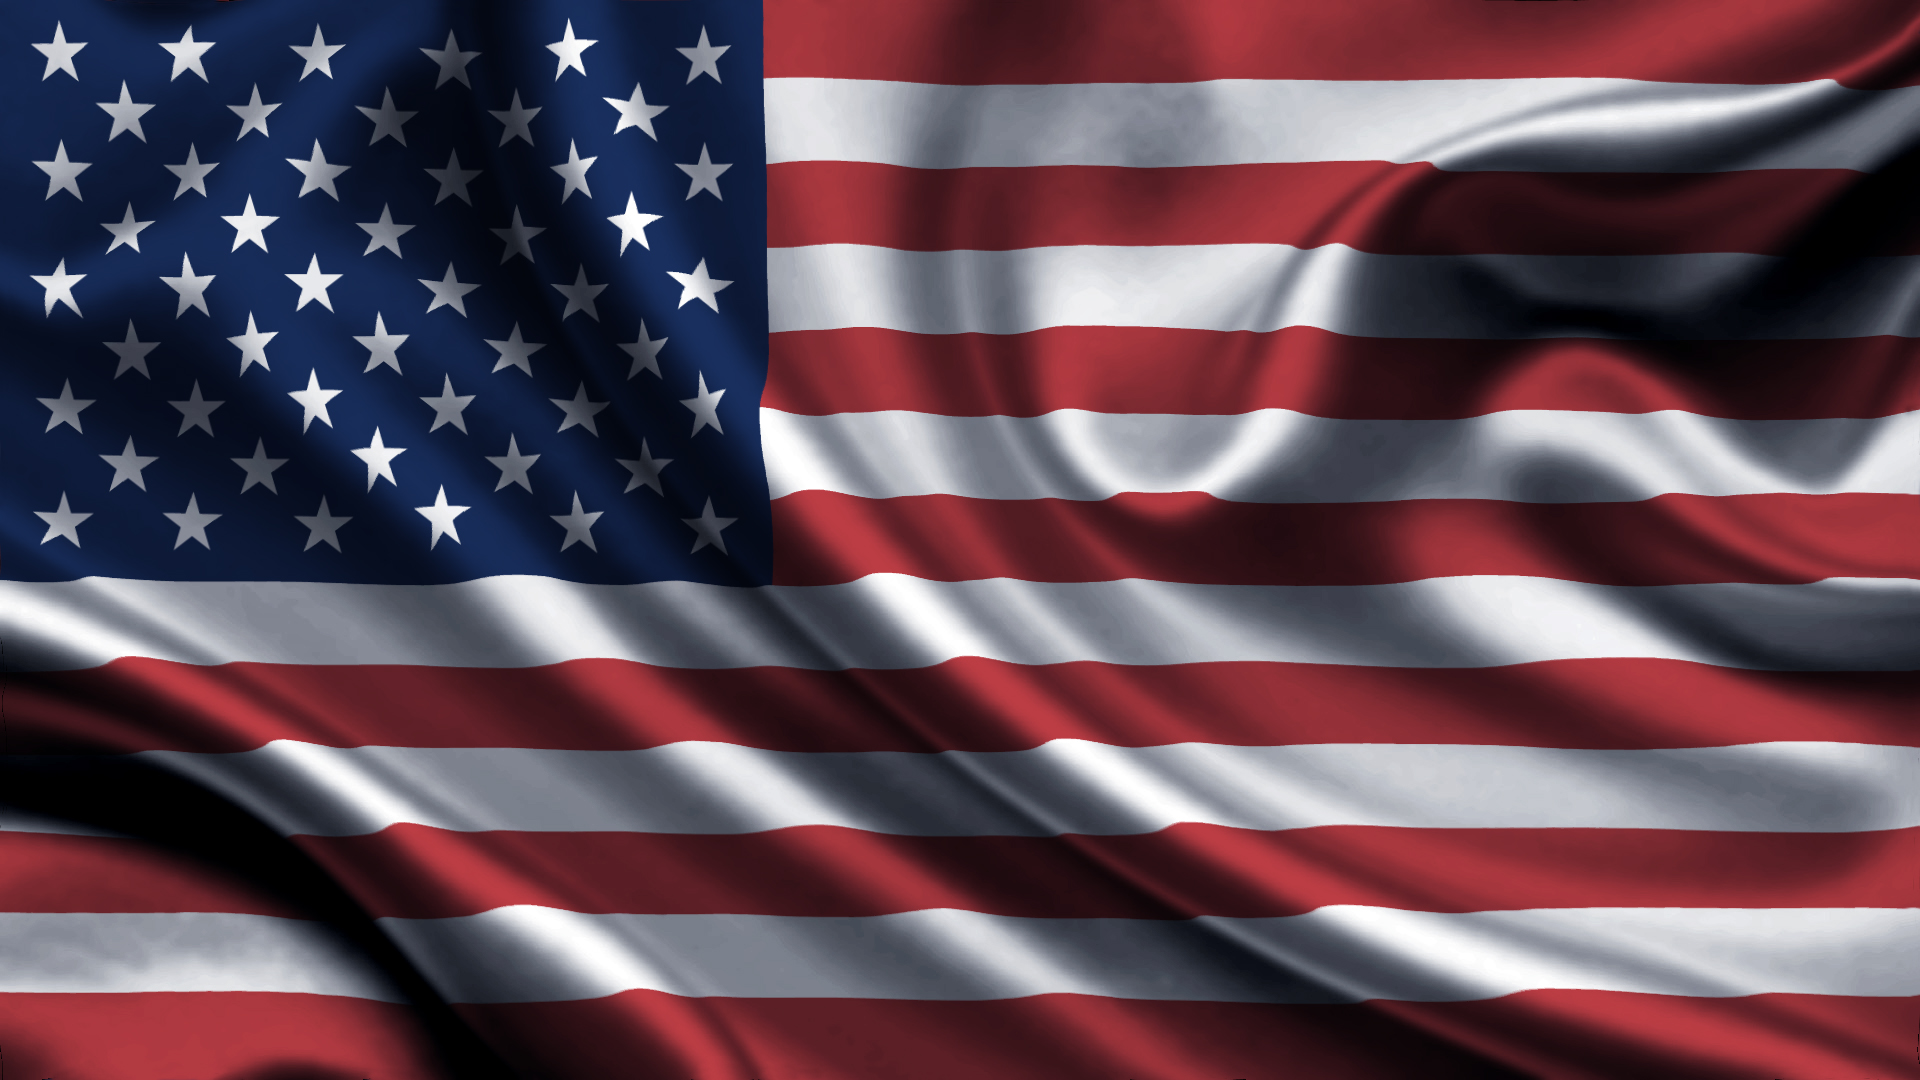 Flag Of United States America Full HD Wallpaper And Background